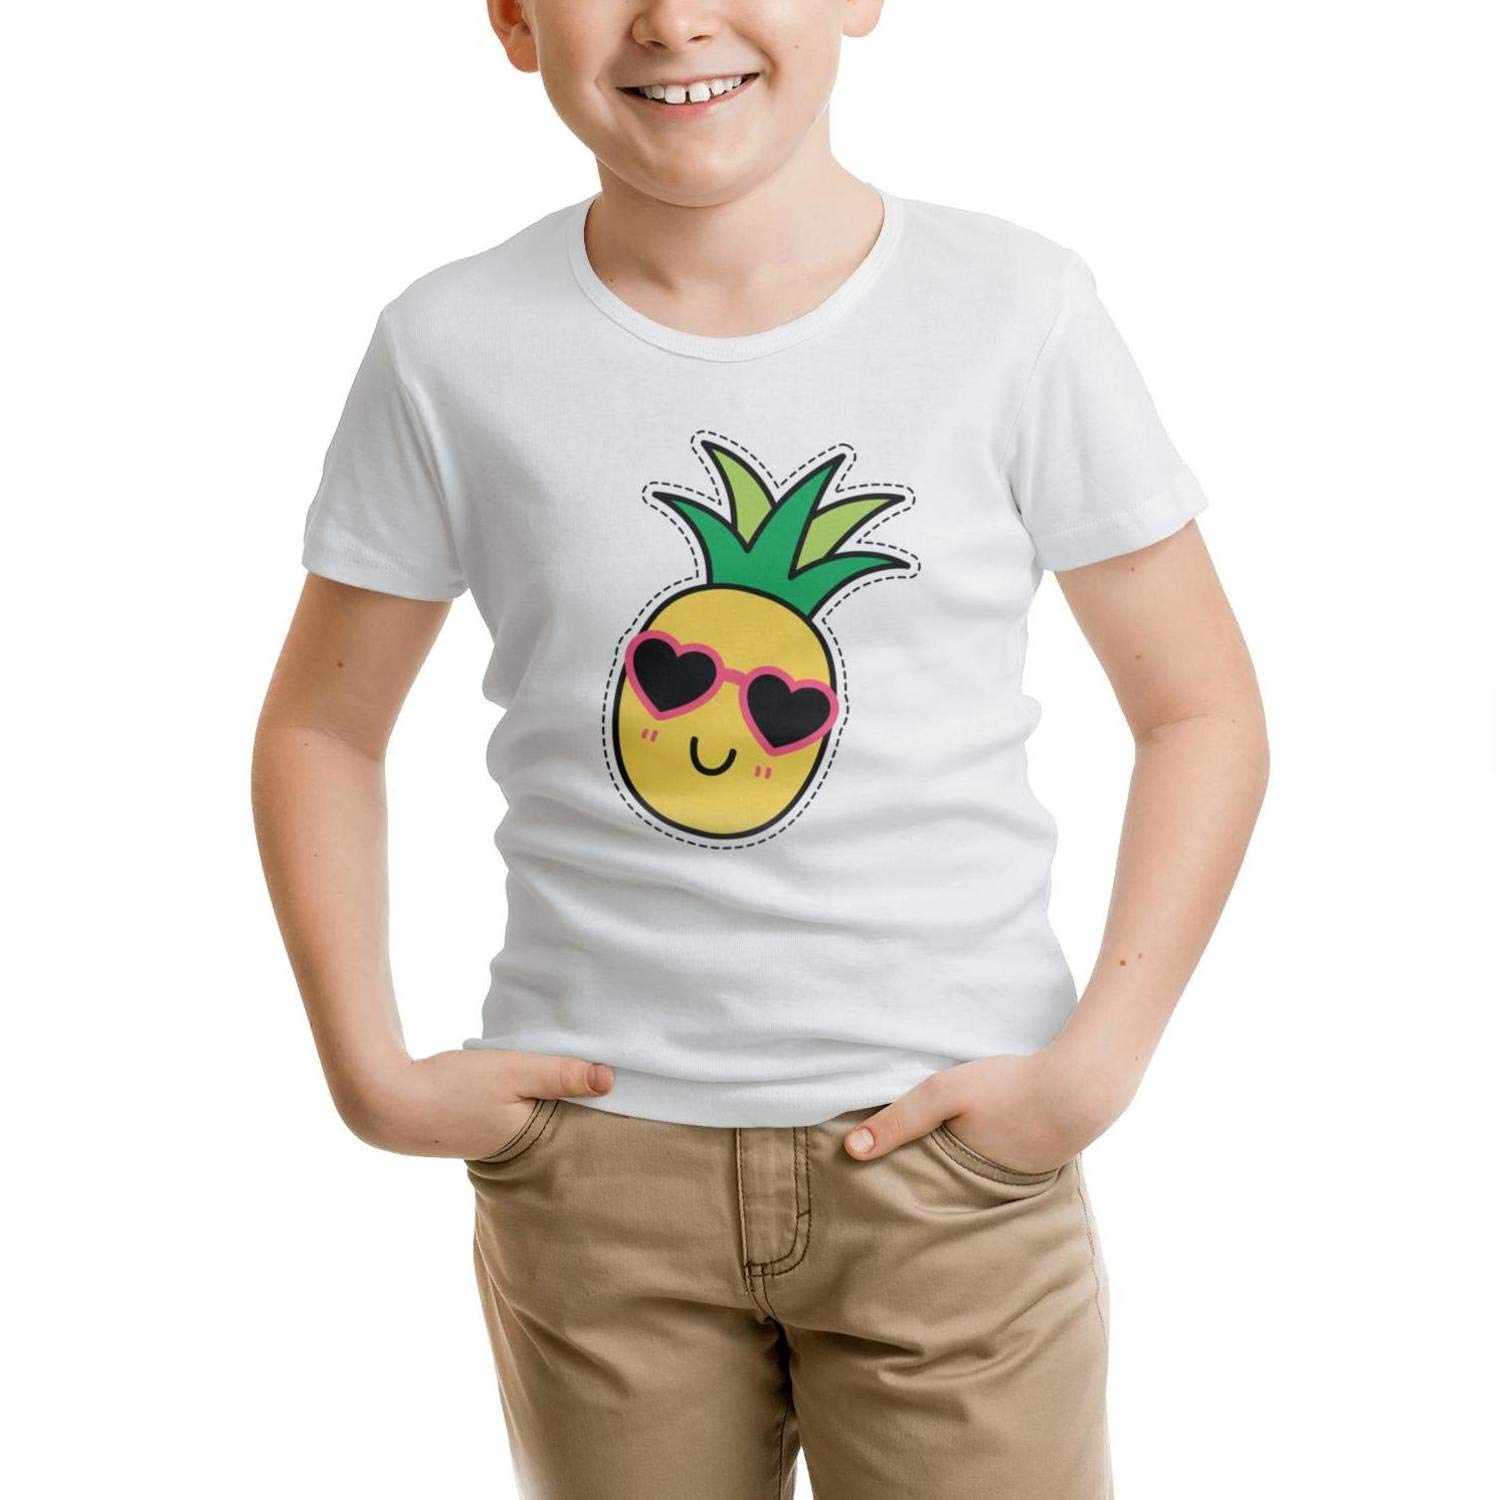 GGTHT Love Glasses Pineapple Toddlers White O-Neck Short Sleeve Cotton t Shirts